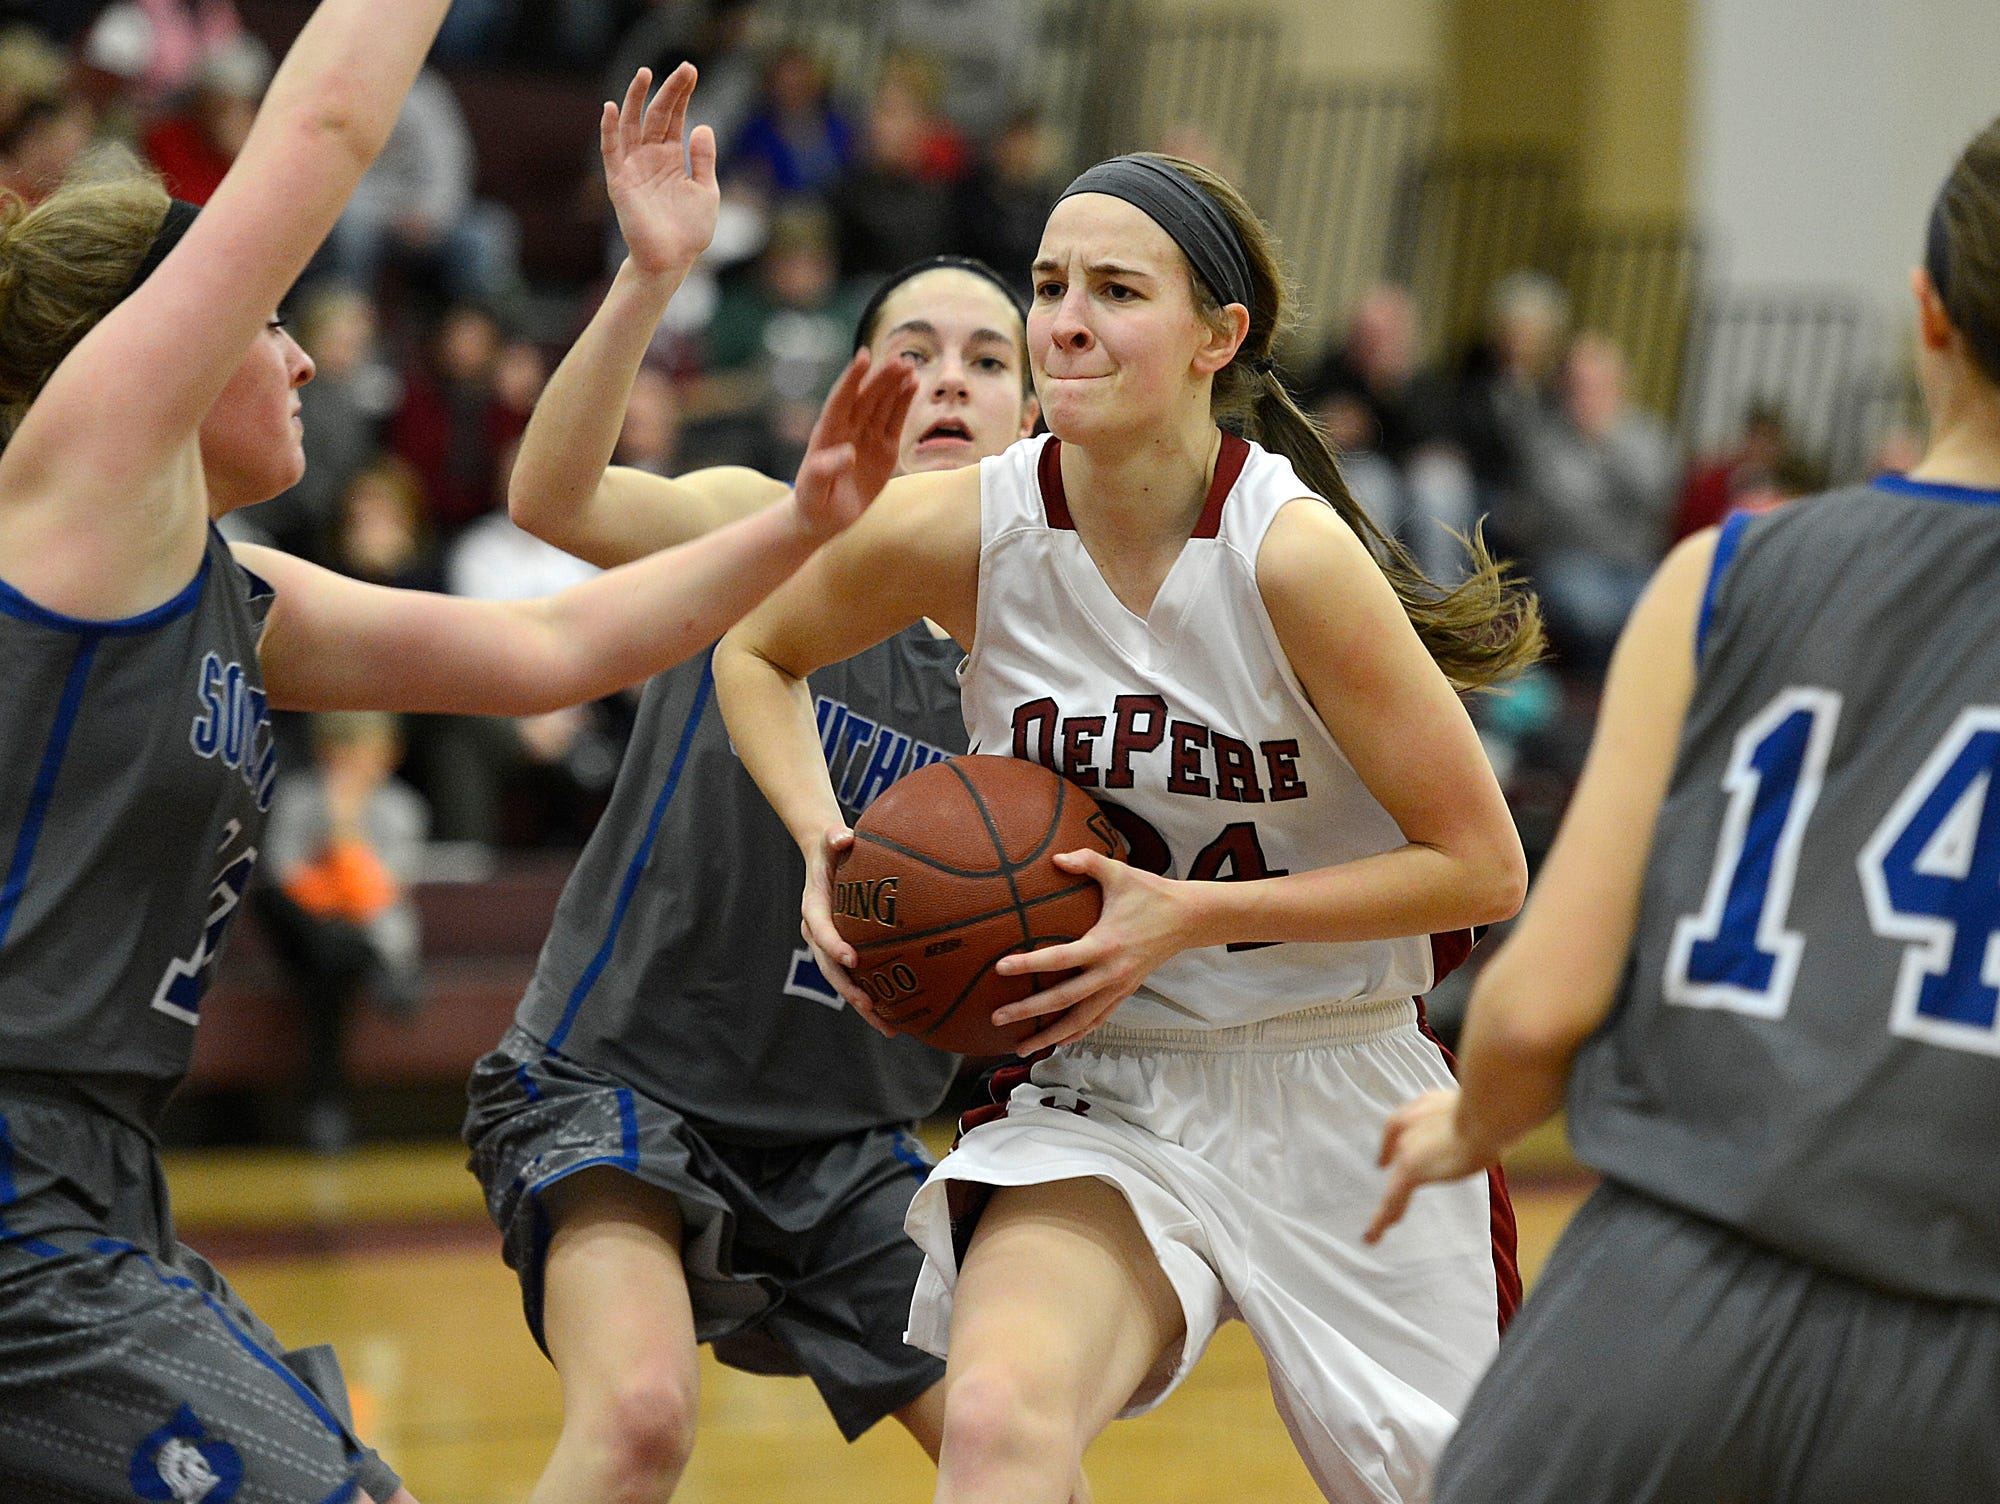 De Pere's Jessie Rabas tries to get by several Green Bay Southwest defenders while driving to the basket in a January game at De Pere High School.